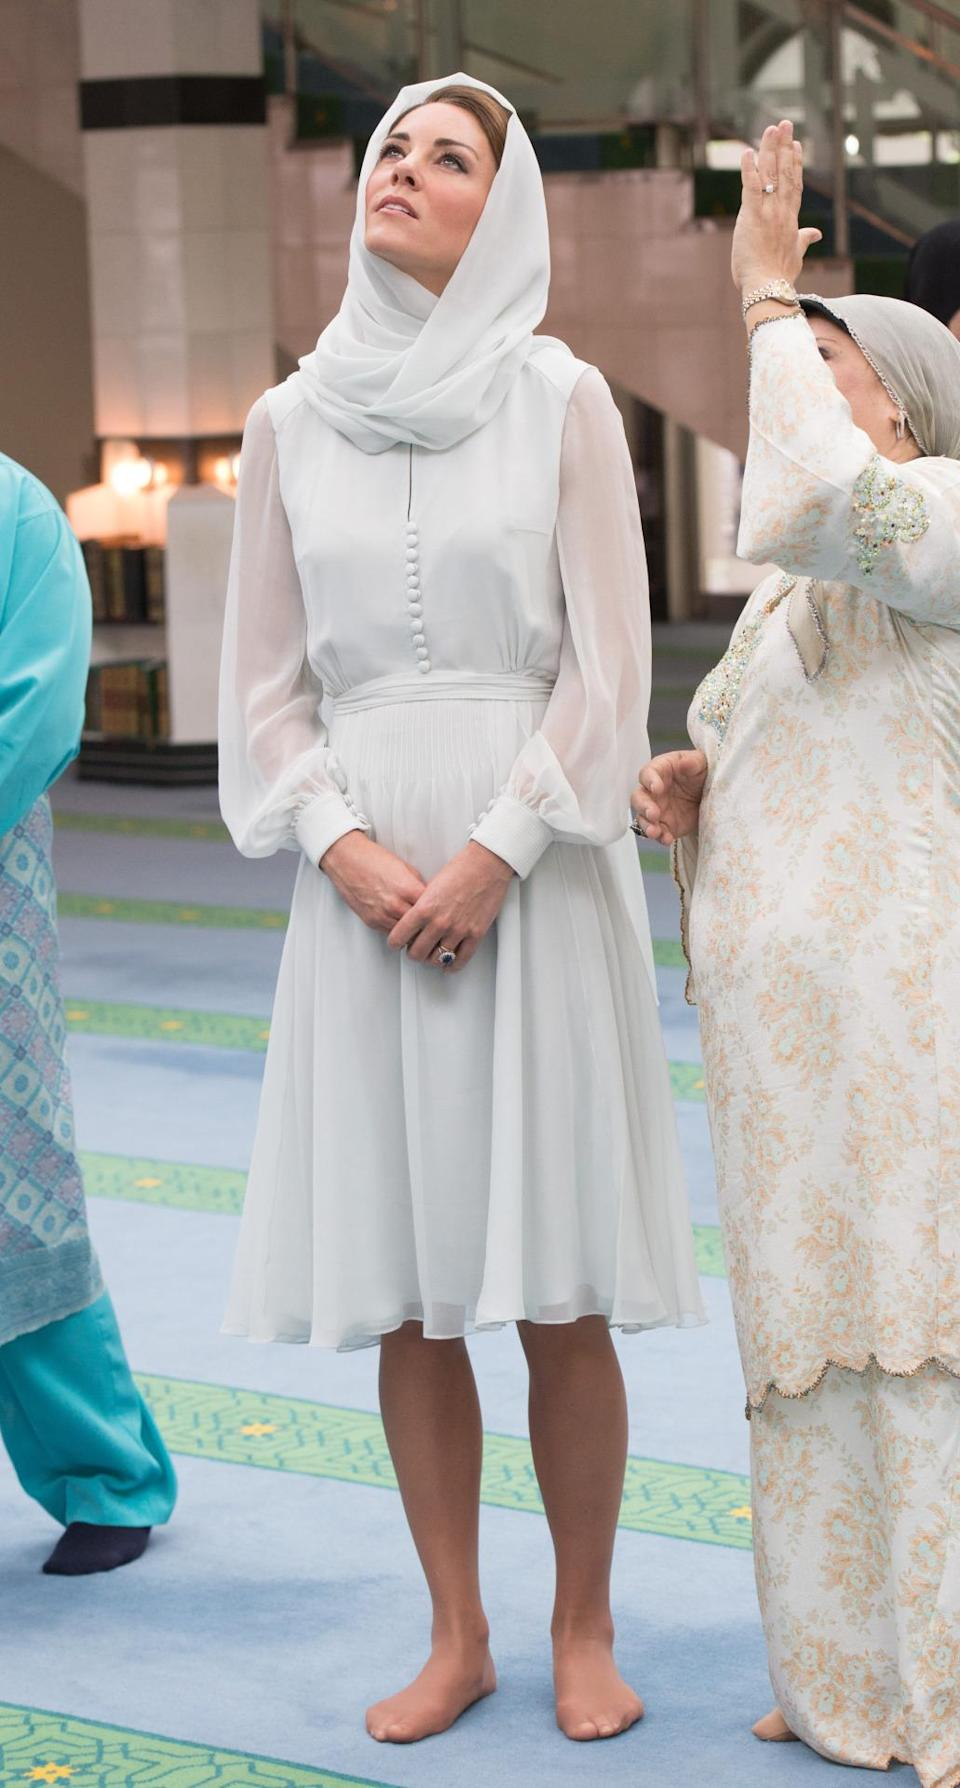 <p>Kate visited a mosque in Kuala Lumpur in a lightweight chiffon dress by Beulah London. </p><p><i>[Photo: PA]</i></p>